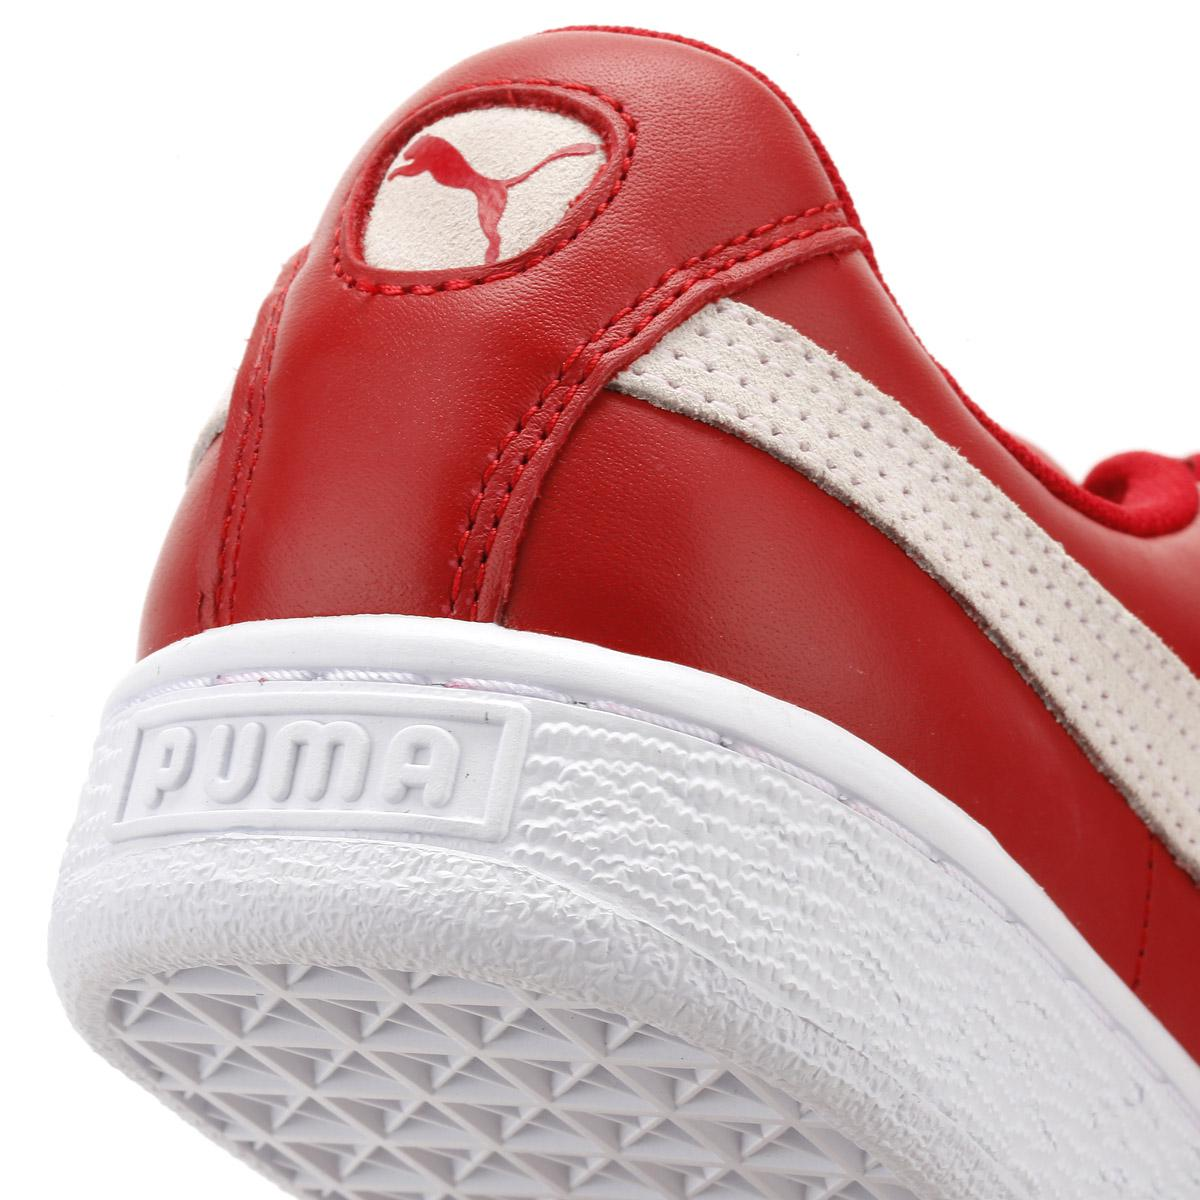 ce3c9a81adec Lyst - PUMA Womens Toreador Red Basket Heart De Trainers in Red